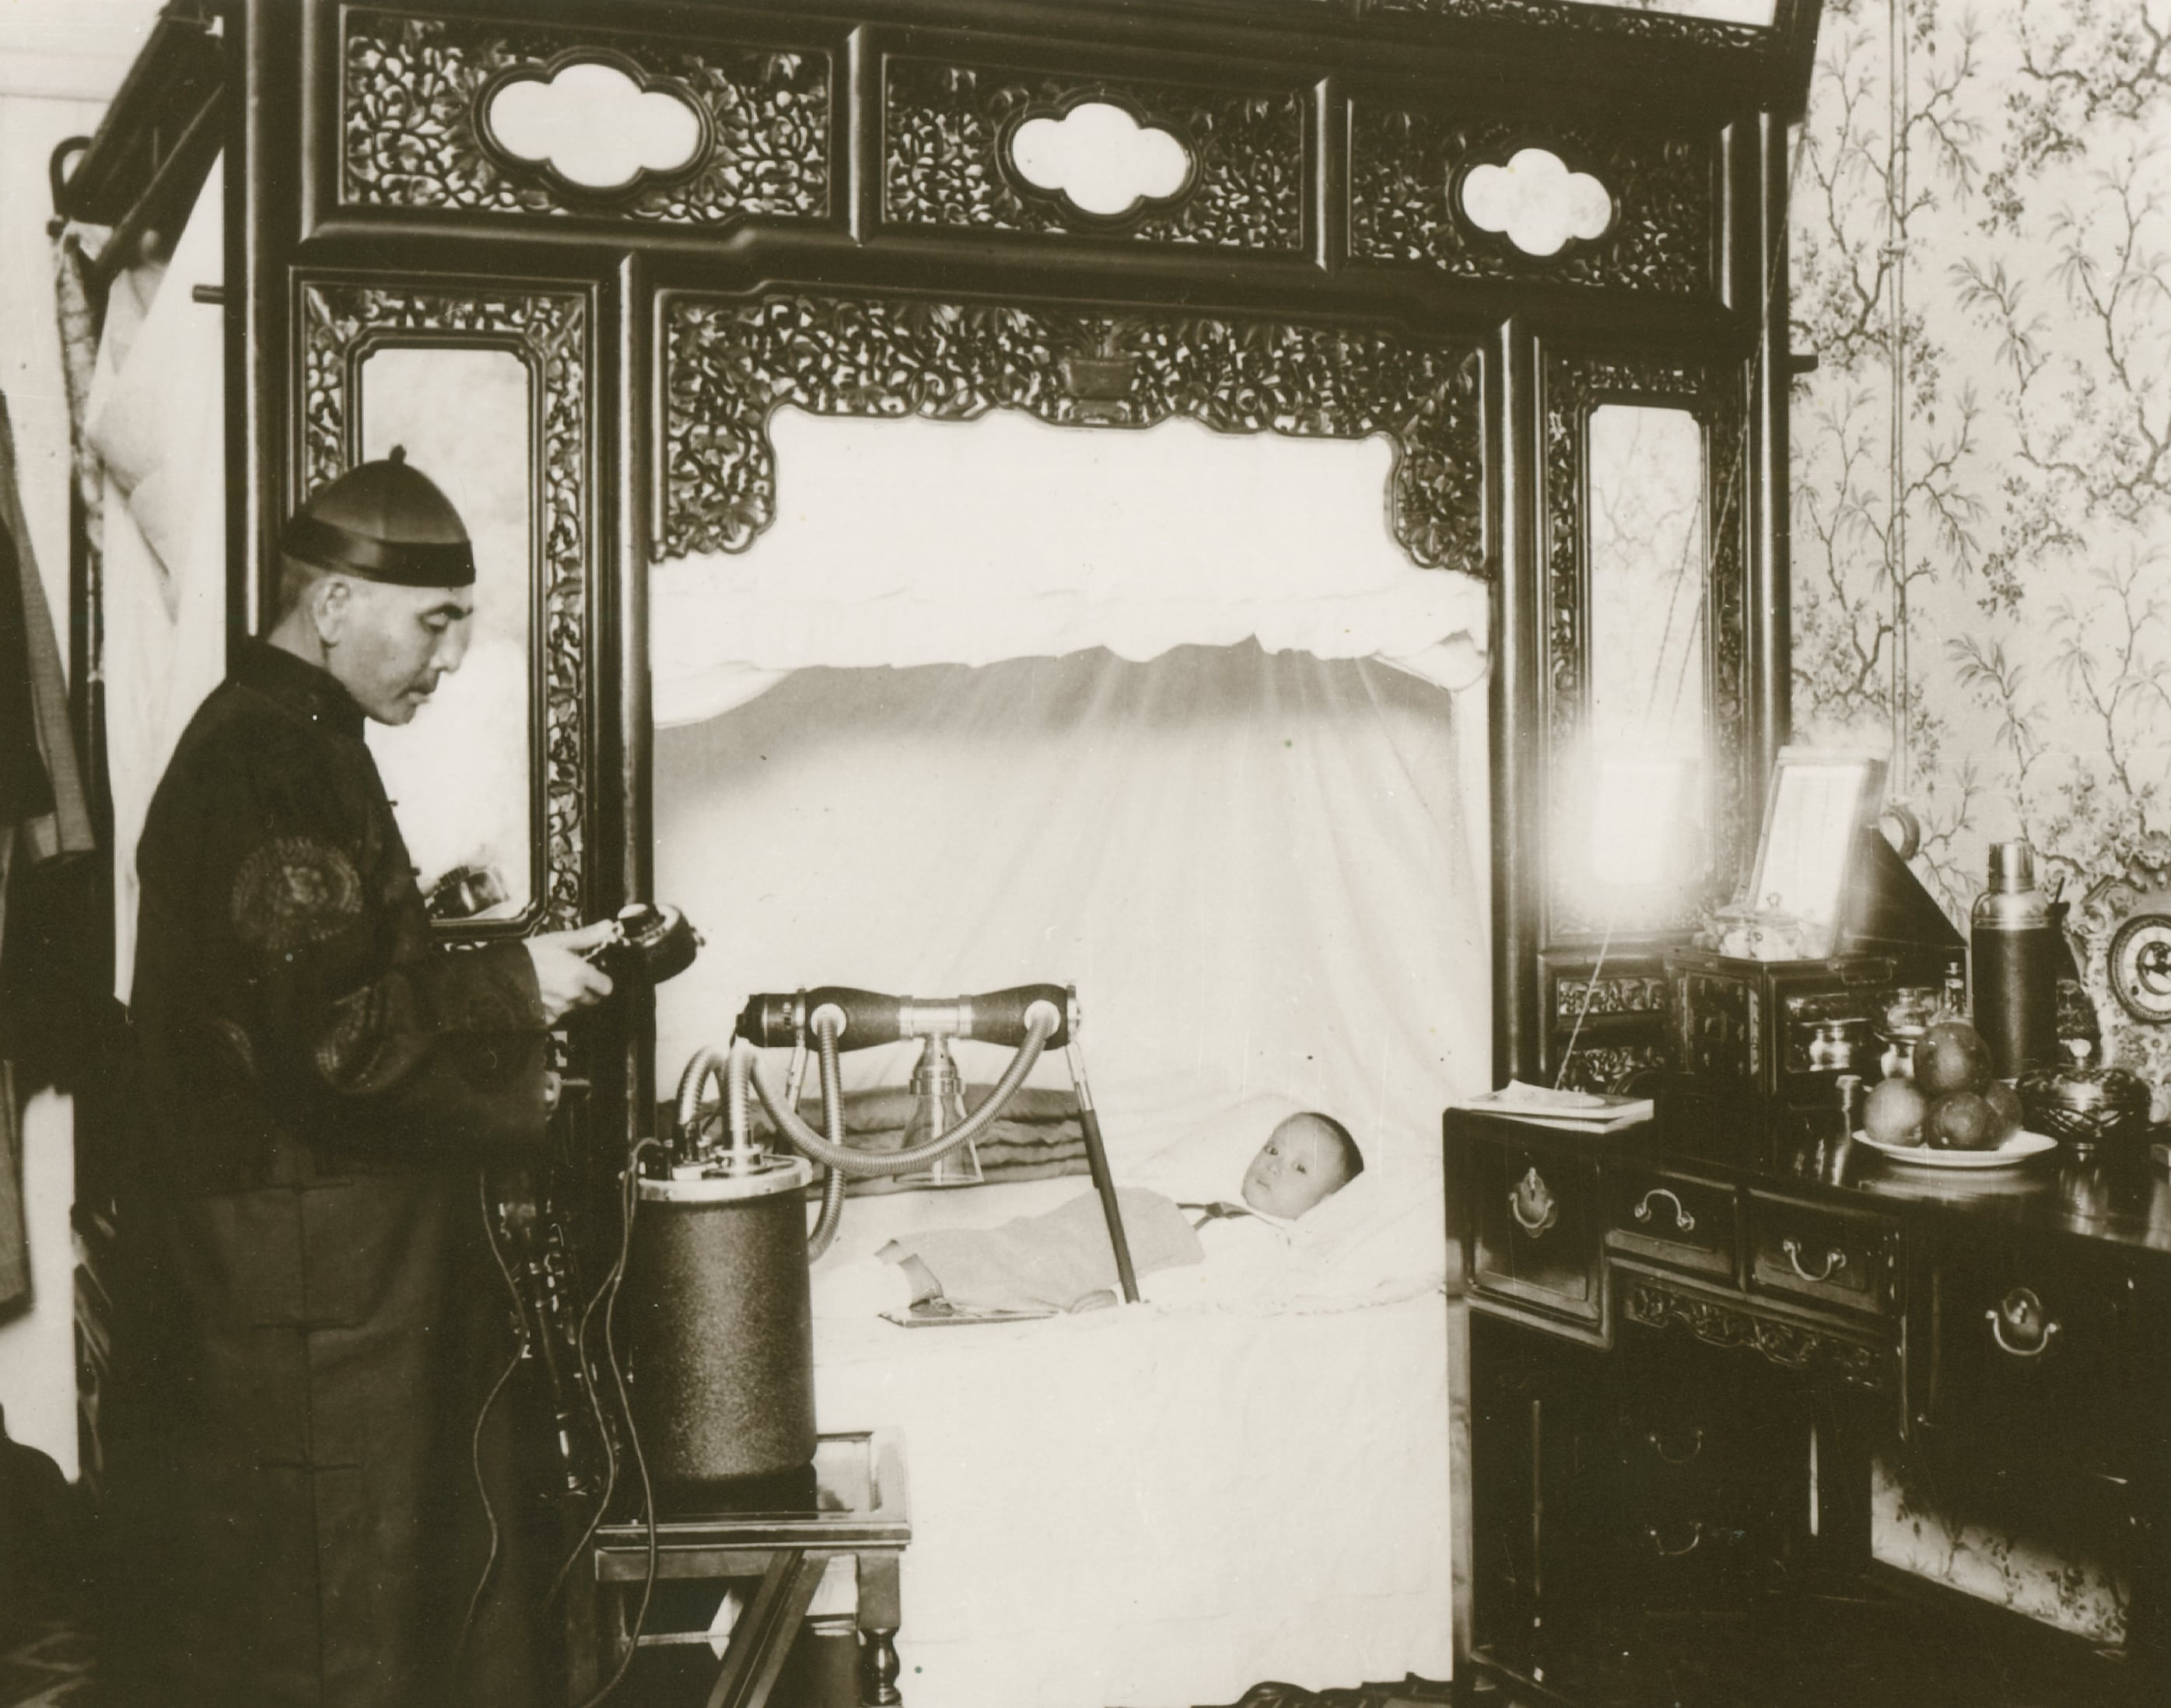 1931 - Philips portable Metalix X-ray system used in the Forbidden City in China during the Qing dynasty